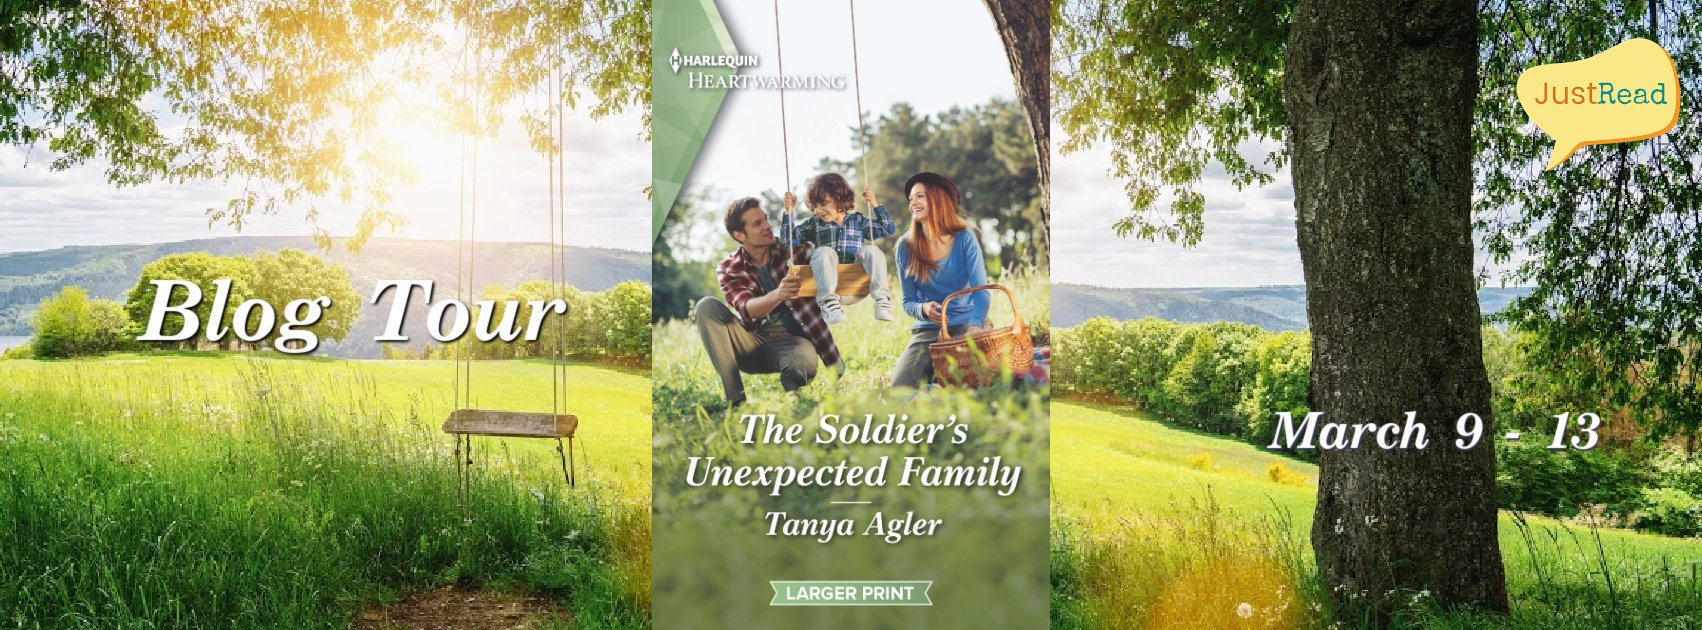 Welcome to The Soldier's Unexpected Family Blog Tour & Giveaway!